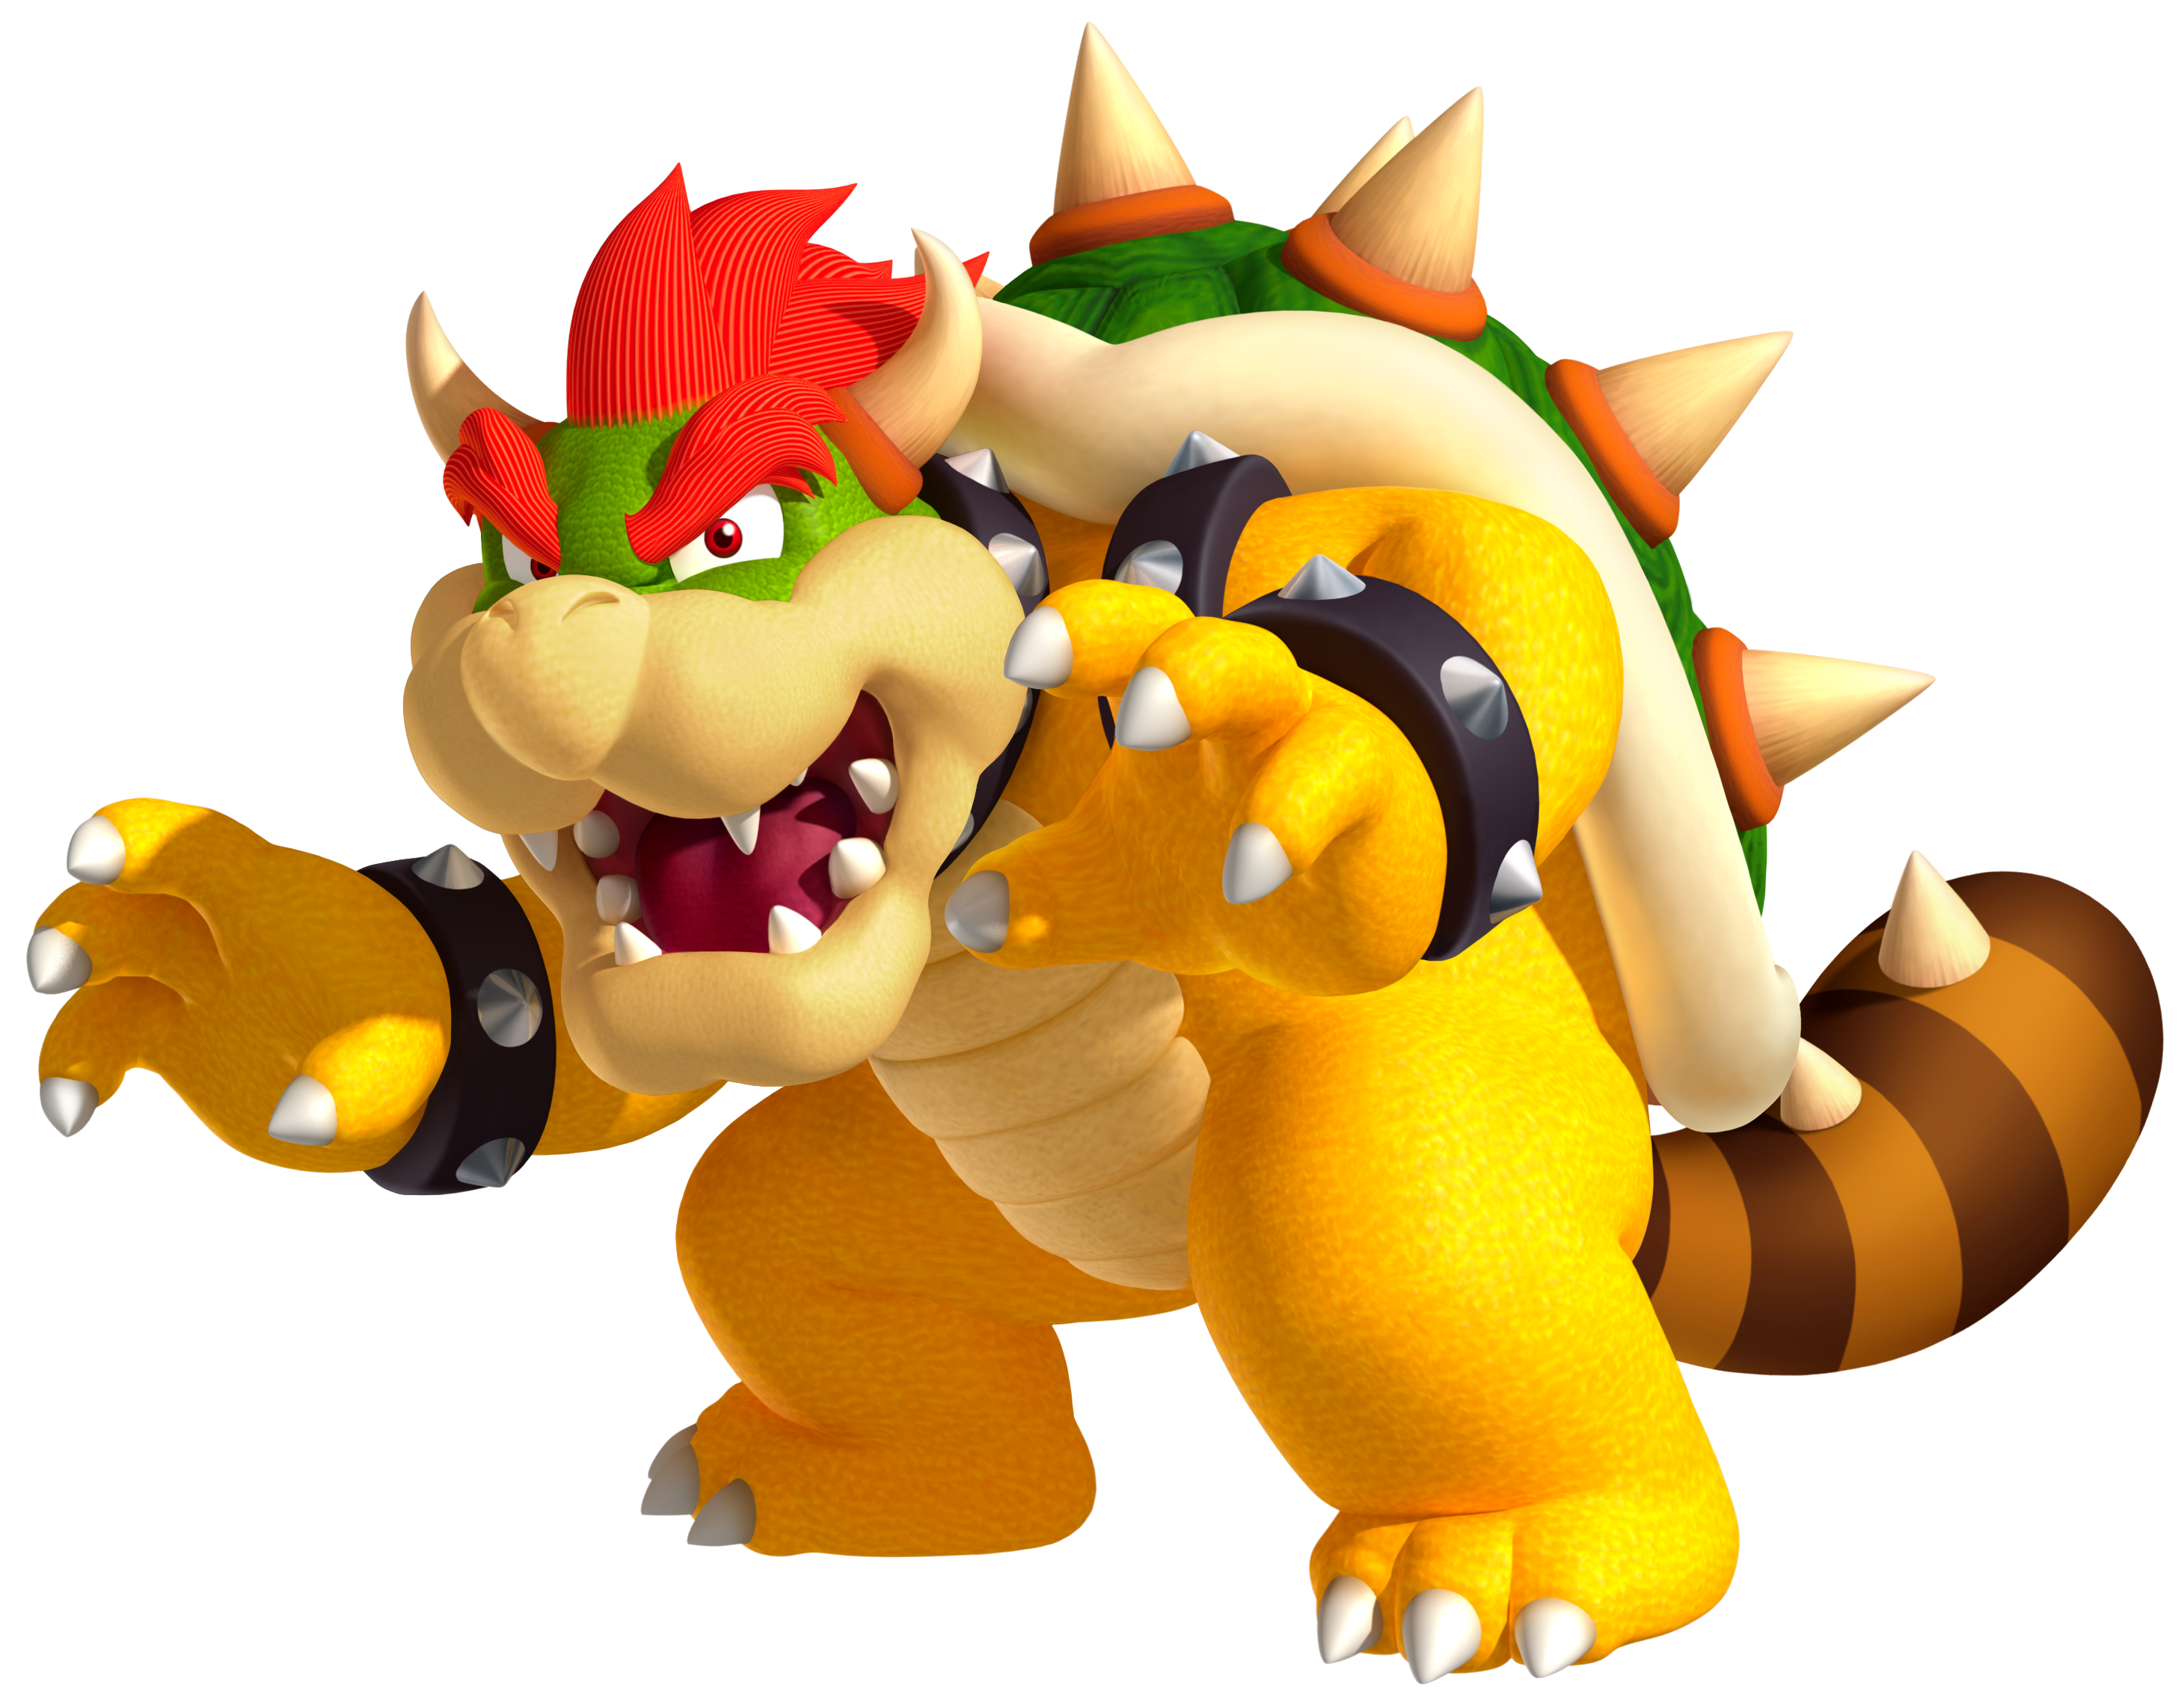 Goomba Transparent Bowser Picture 1404470 Goomba